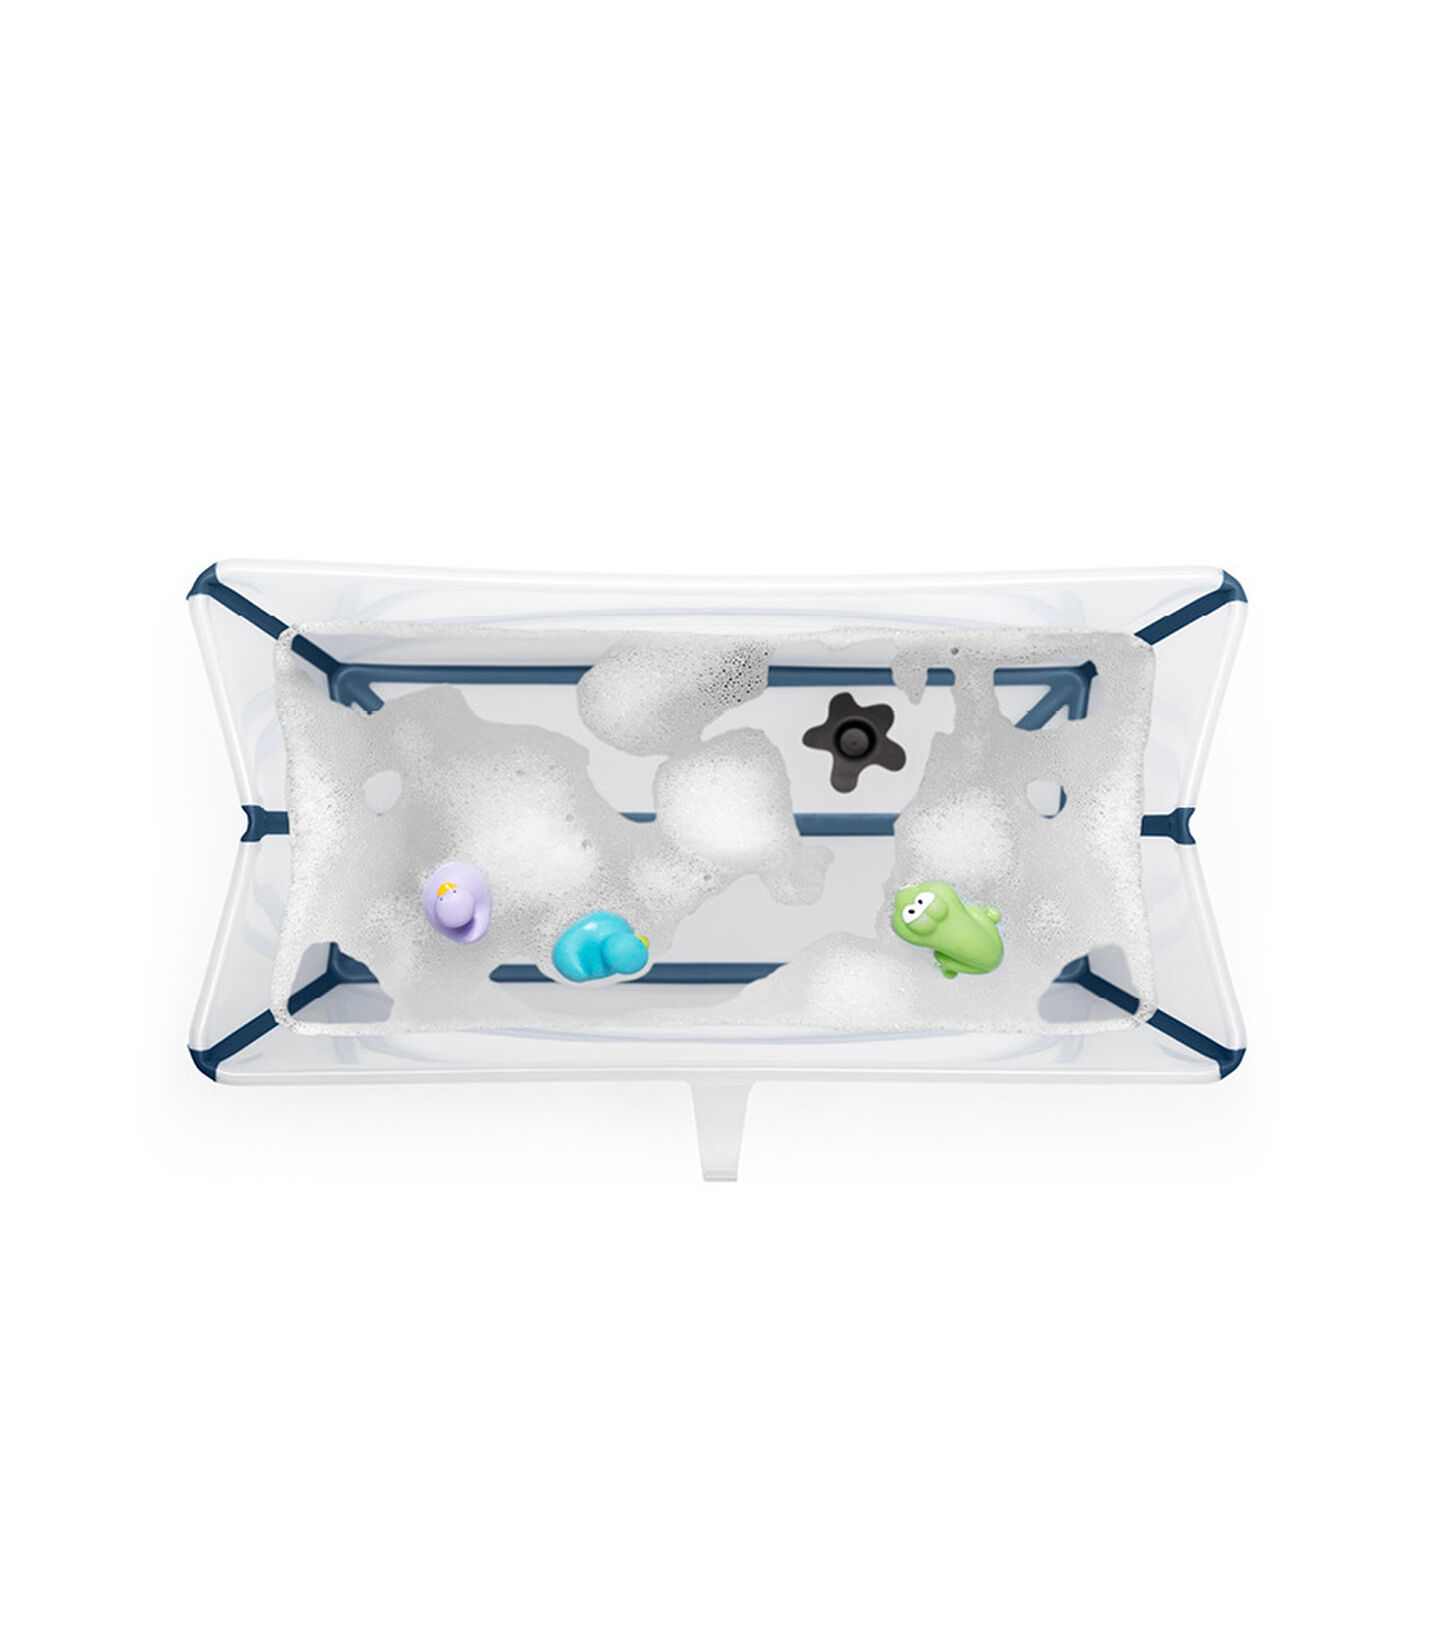 Stokke® Flexi Bath® bath tub, Transparent Blue. Open.